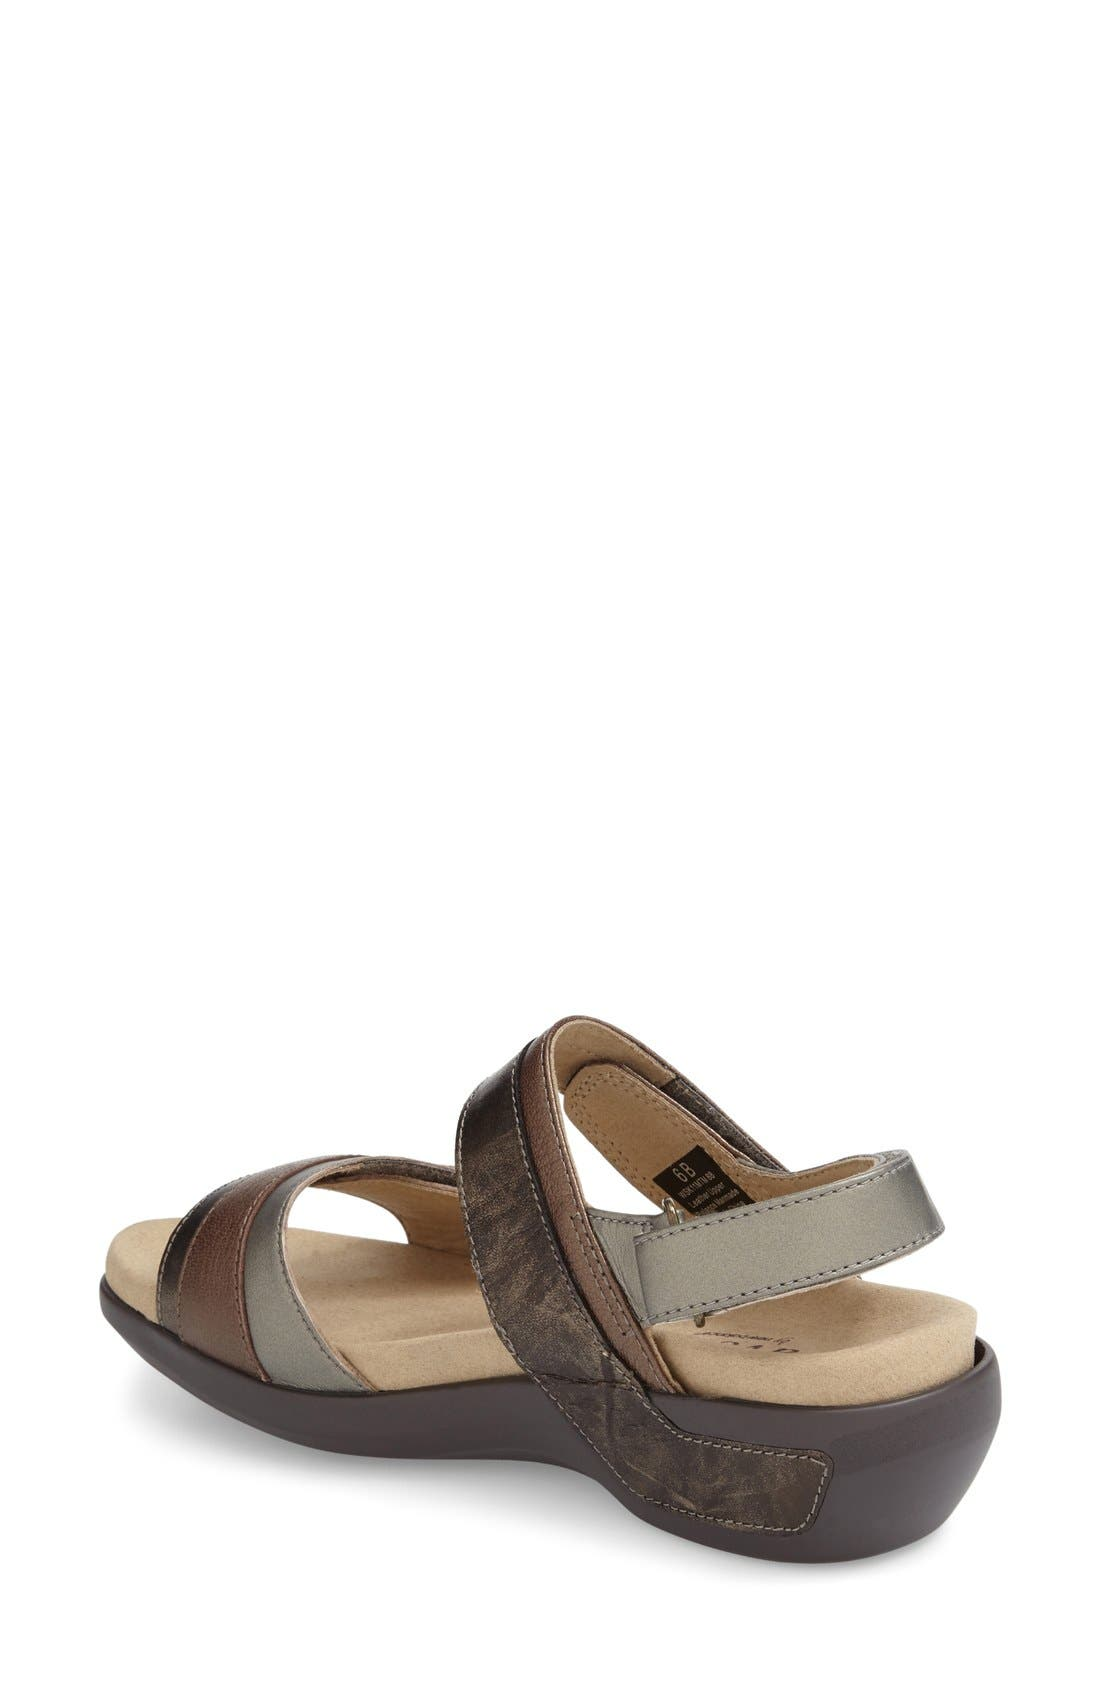 ARAVON, 'Katherine' Sandal, Alternate thumbnail 2, color, GREY LEATHER